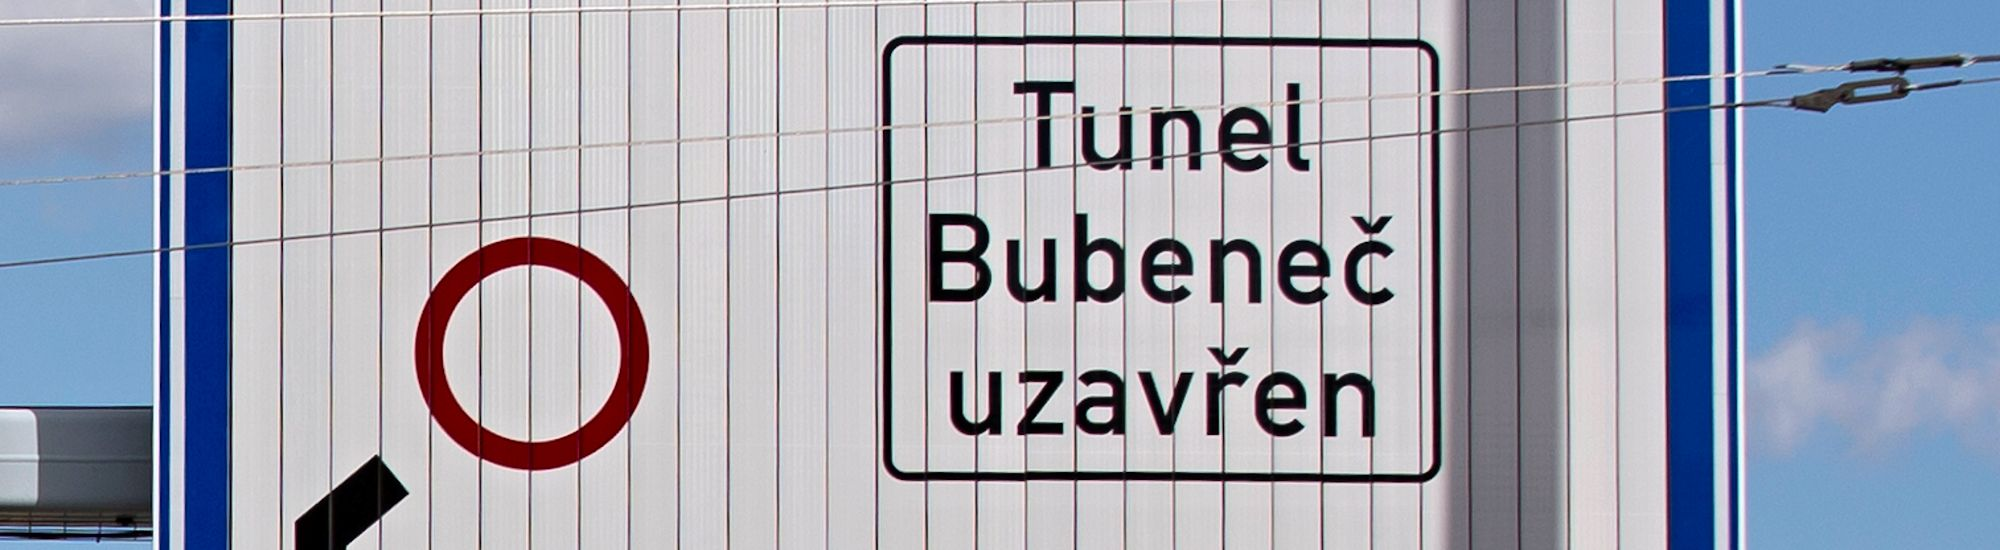 Uzávěra Bubenečského tunelu 15.6.-16.6.2019